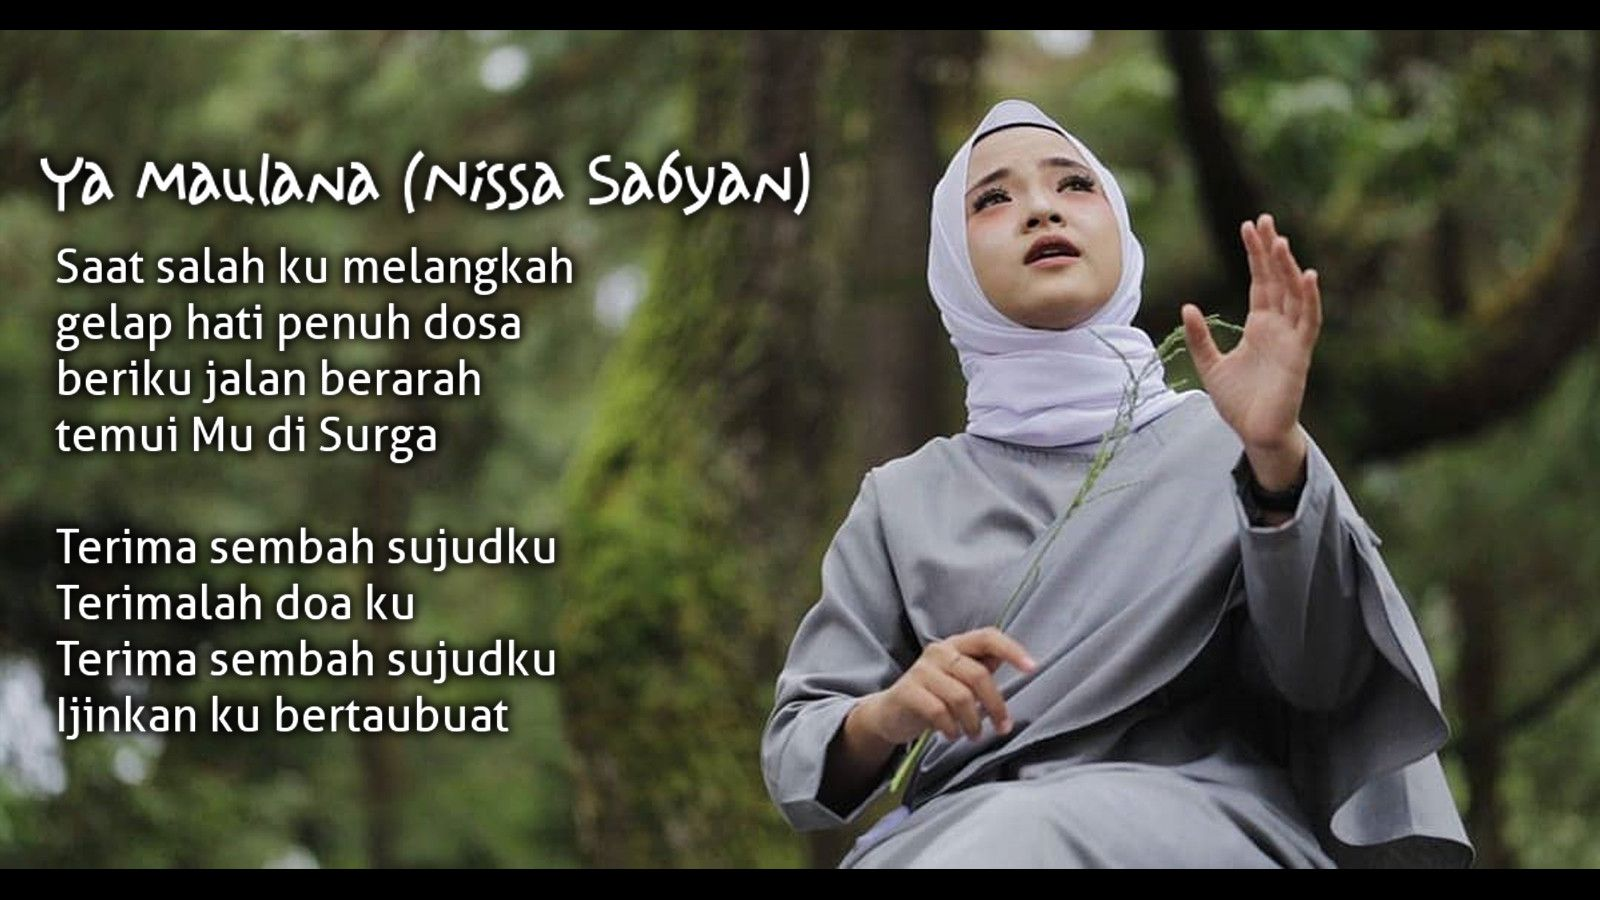 download lagu ya maulana nissa sabyan mp3 | hits music di 2018